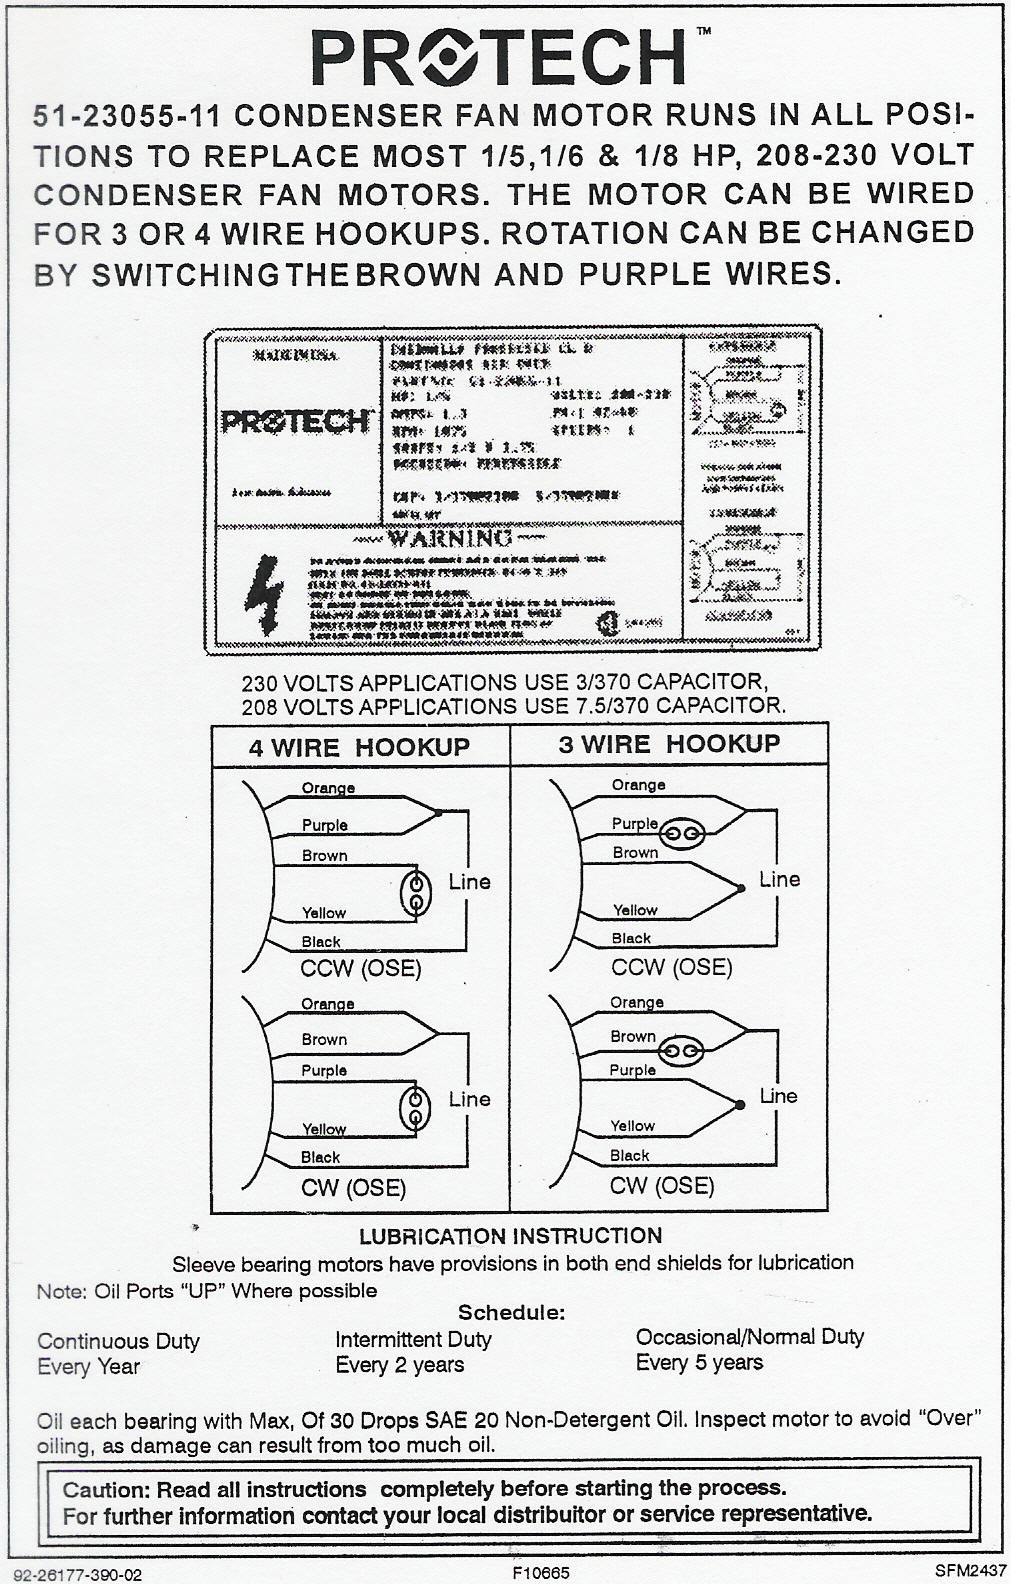 Awesome Doerr Lr22132 Wiring Diagram Picture Collection - Electrical ...